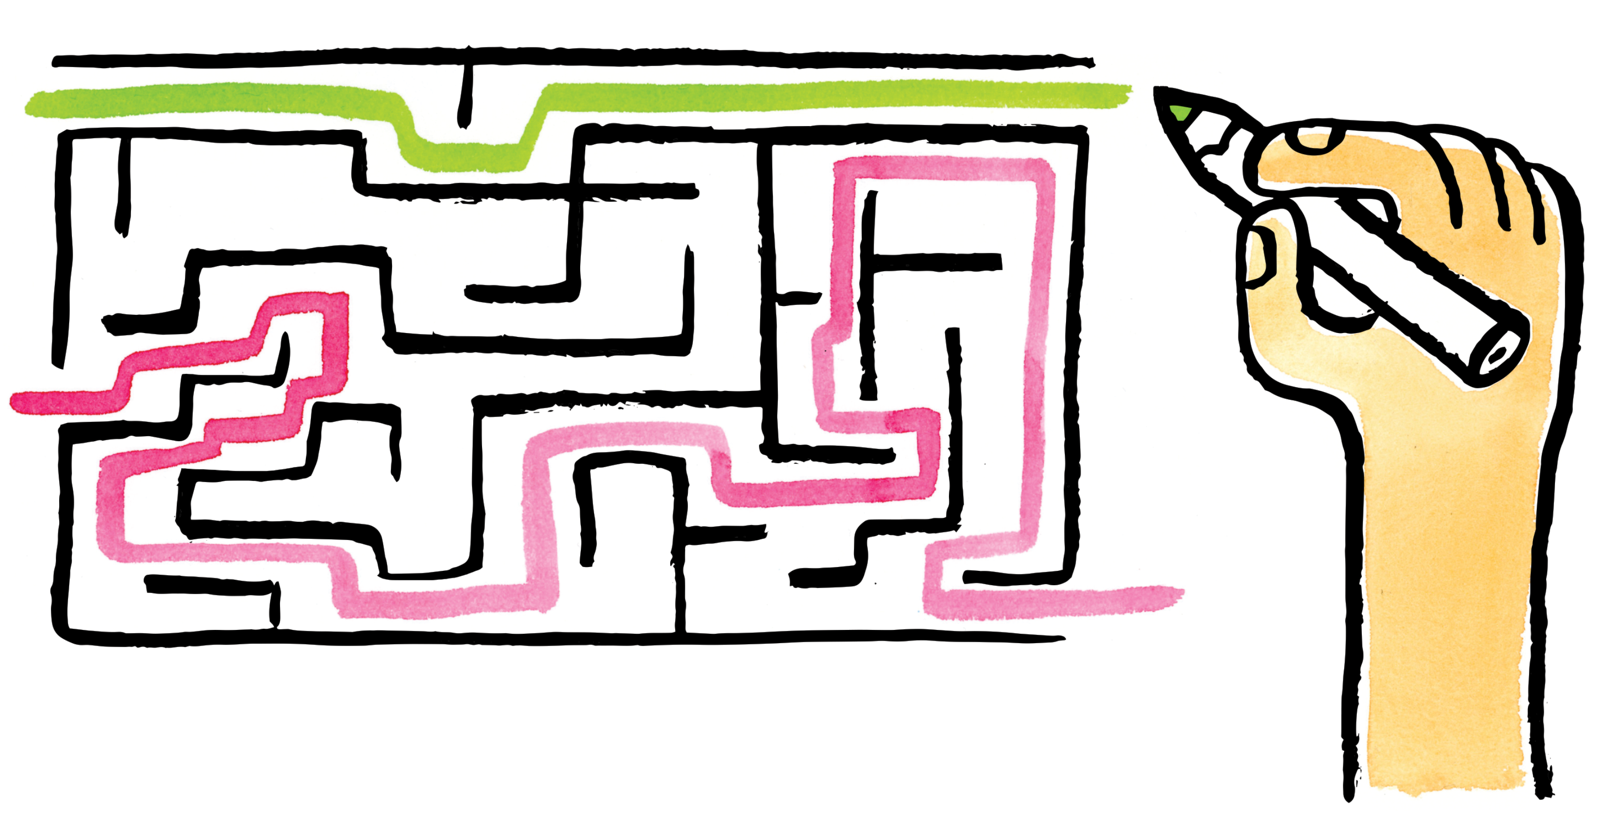 An illustration of a hand drawing a maze